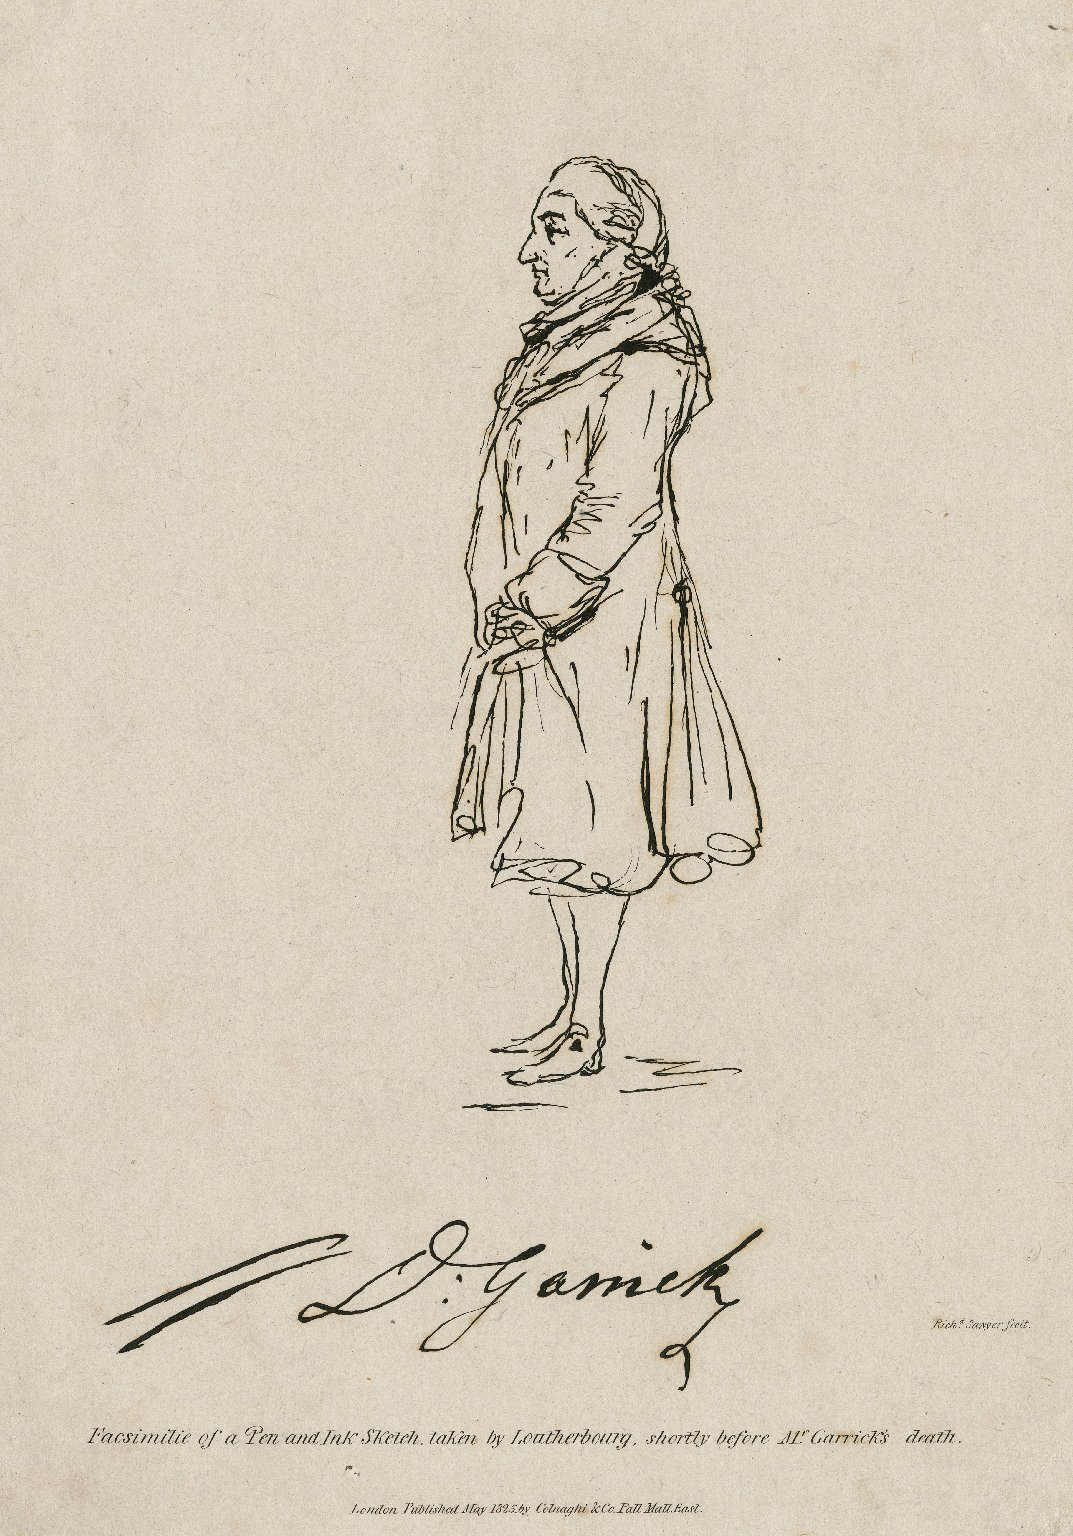 D. Garrick ... [graphic] / facsimile of pen and ink sketch, taken by Loutherbourg shortly before Mr. Garrick's death ; Richd. Sawyer fecit.